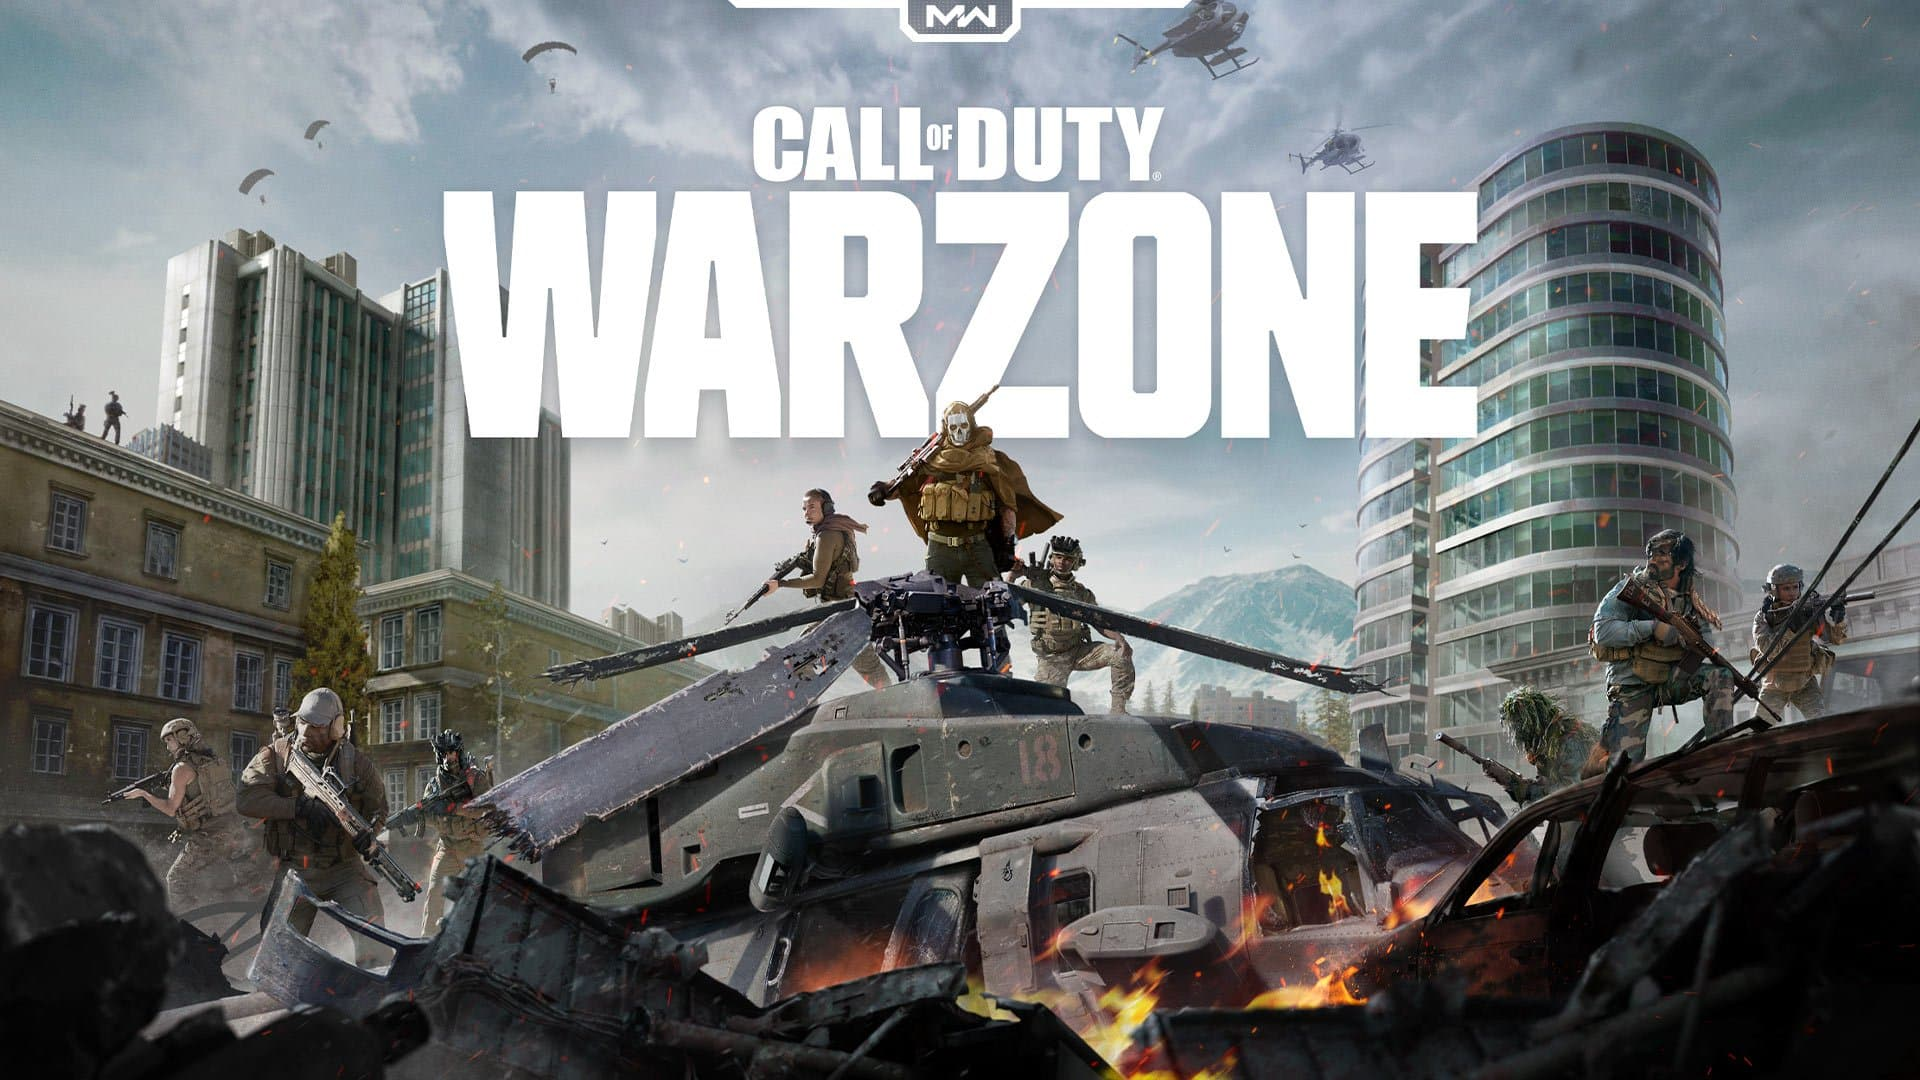 Instalo Call of Duty Warzone